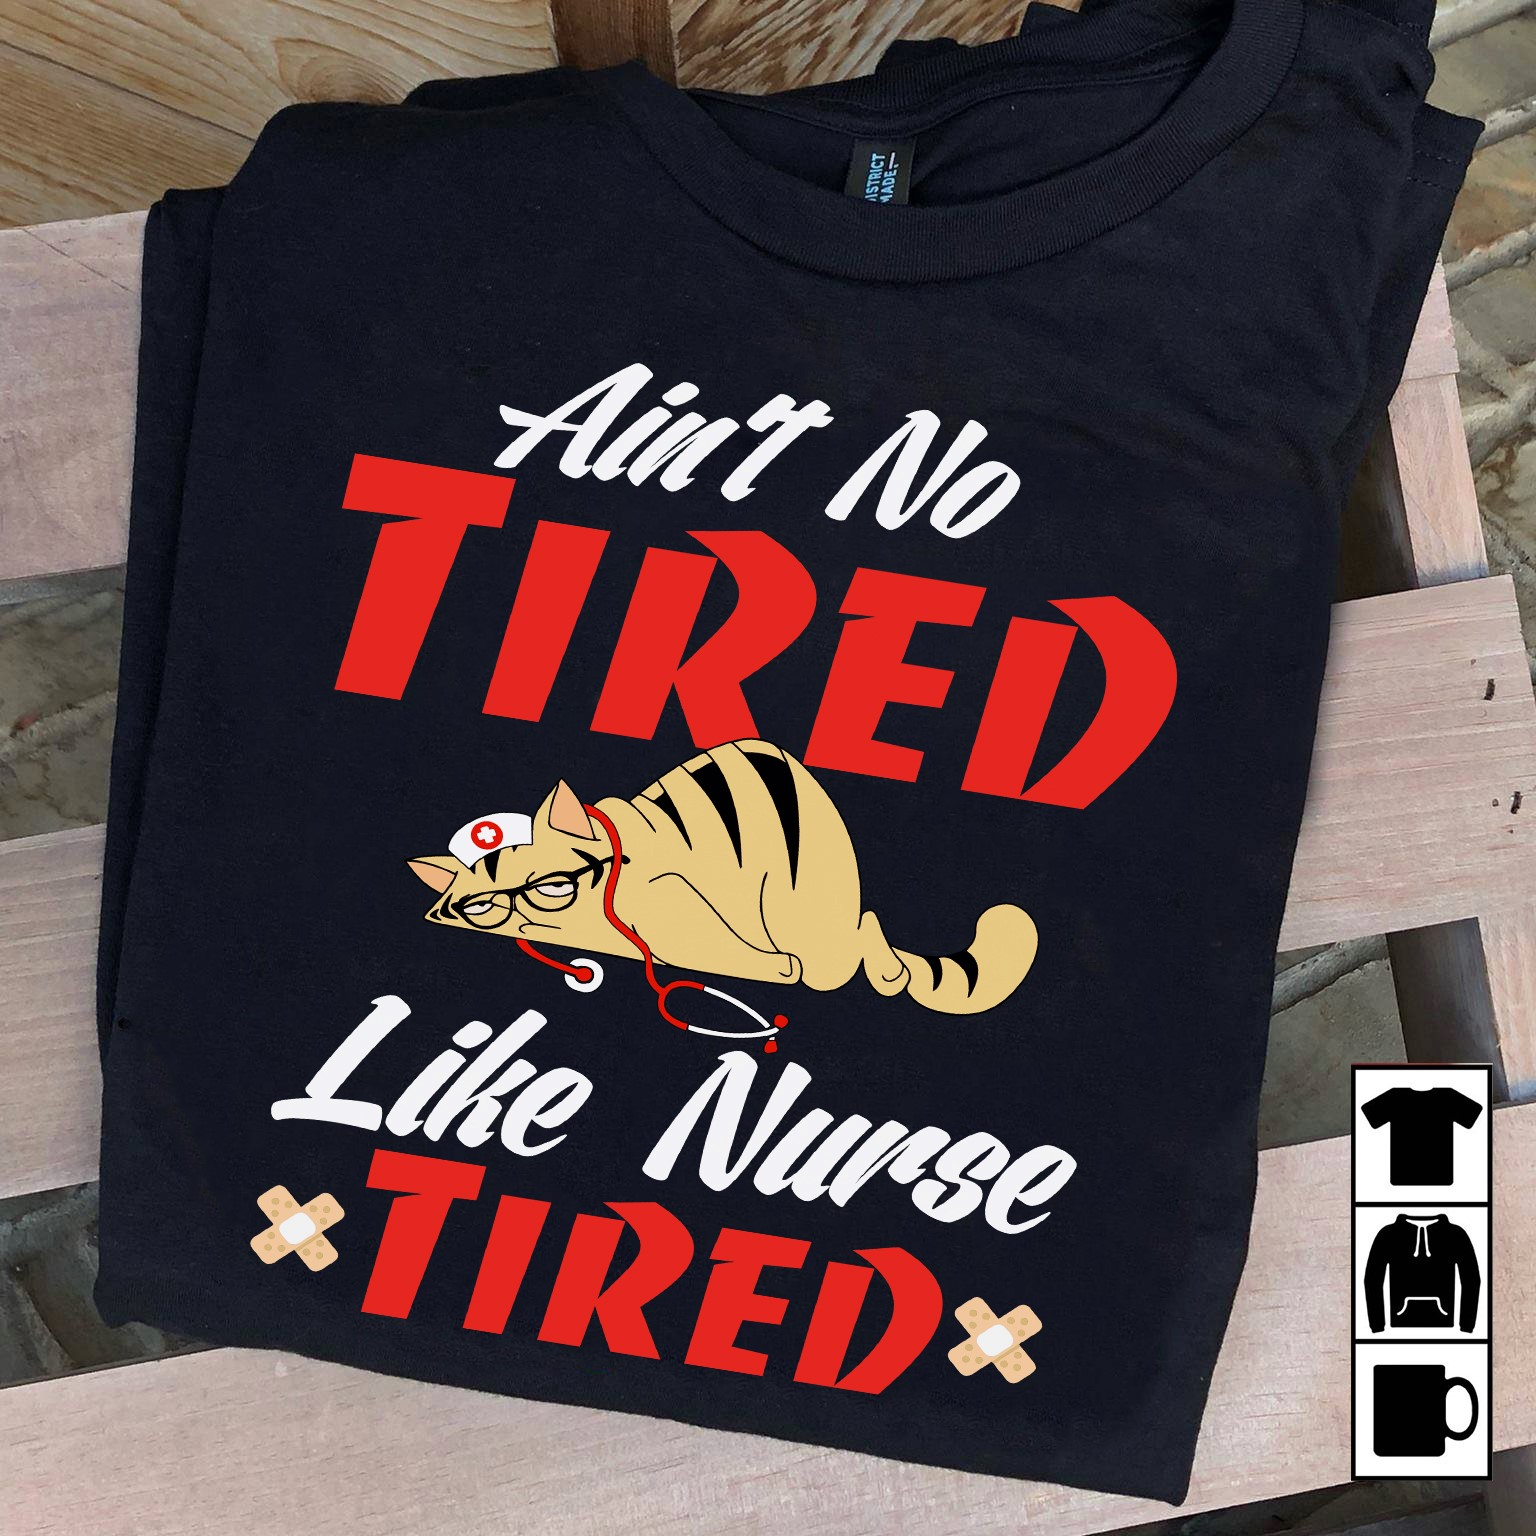 Ain't No Tired Like Nurse Tired Shirt